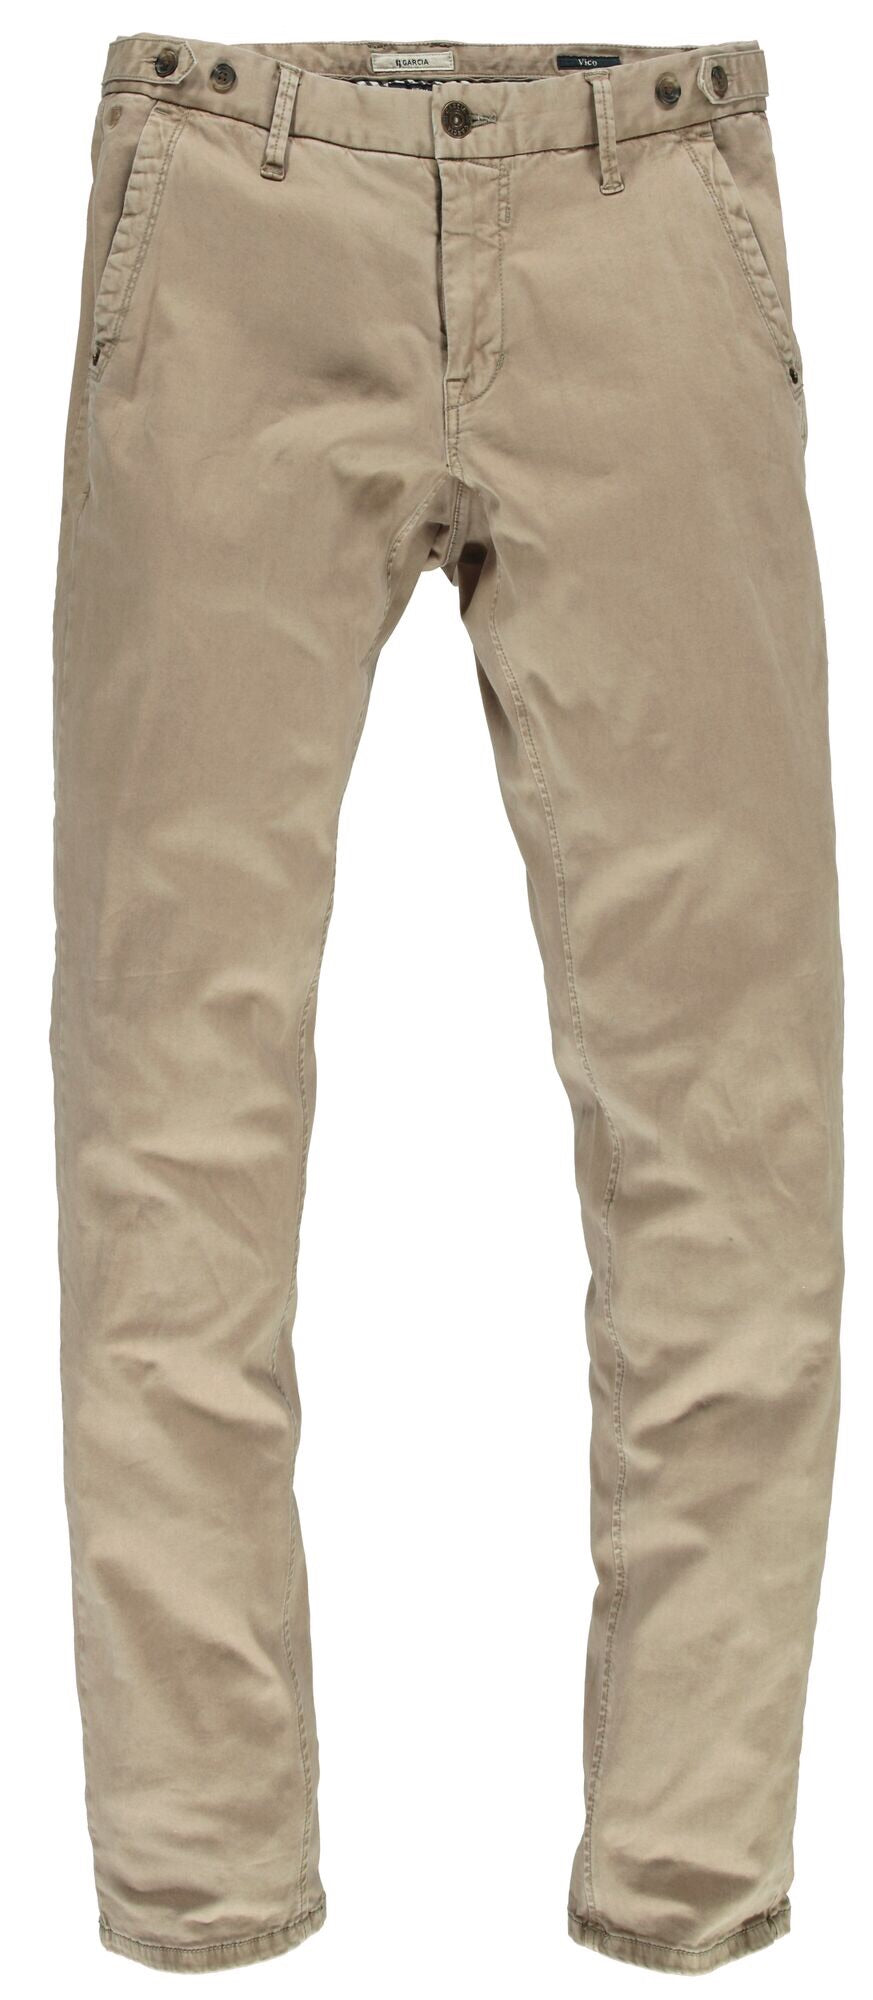 Garcia Men's Warm Sand Chino